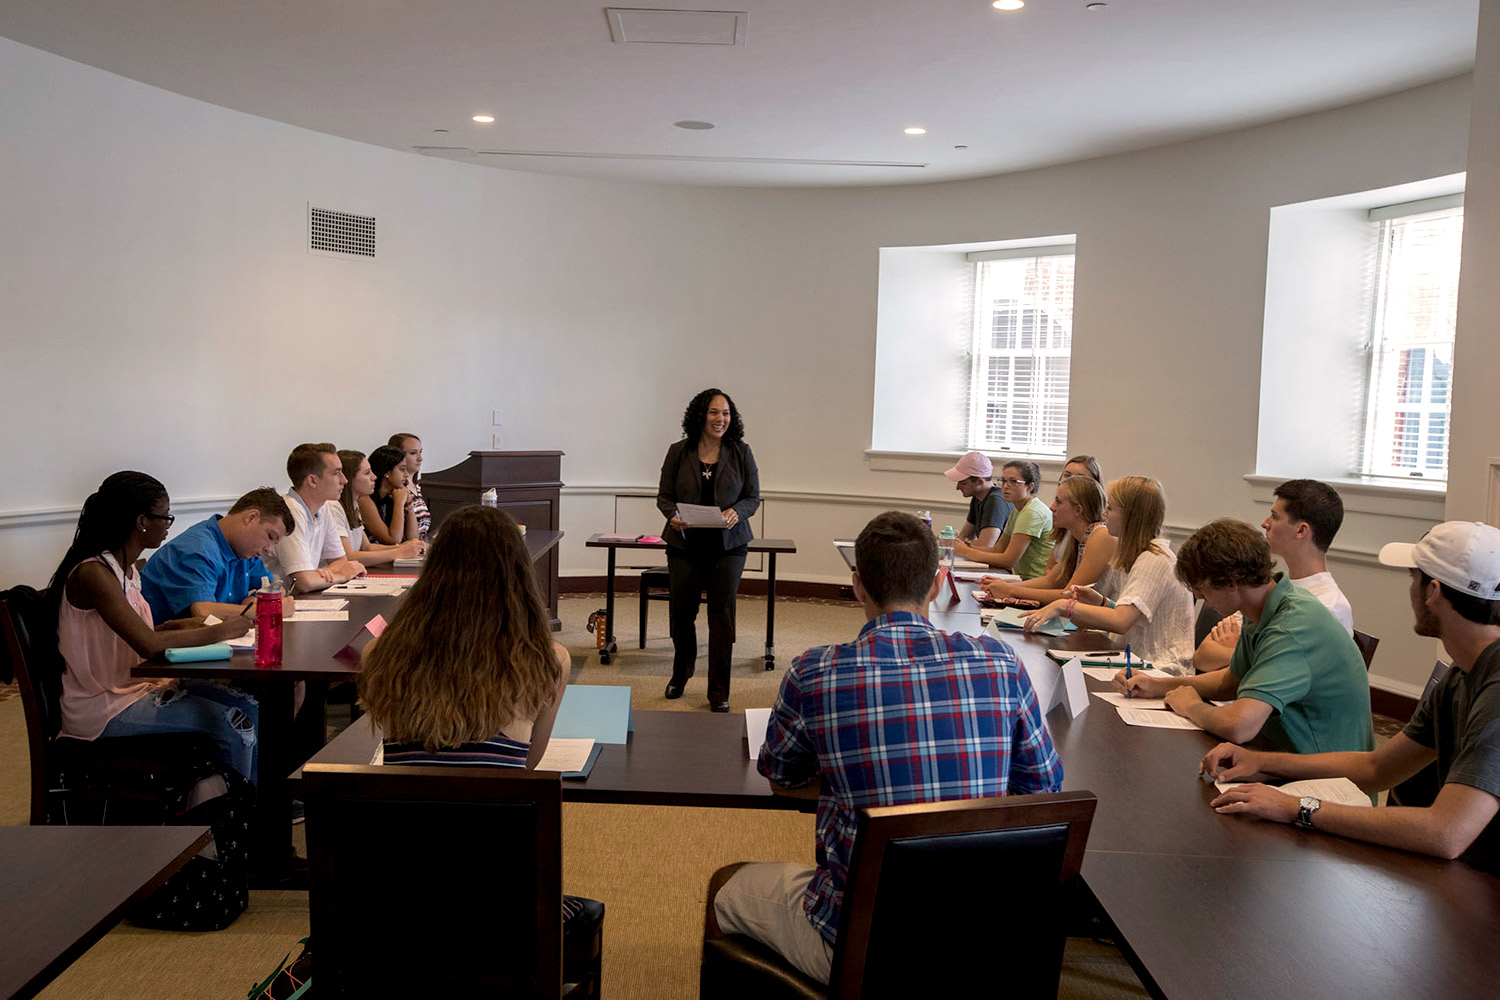 Religious studies assistant professor Nichole M. Flores addresses the first-year students in her College Advising Seminar on religion and politics in the 2016 election. The class was one of the first held in the renovated Rotunda.